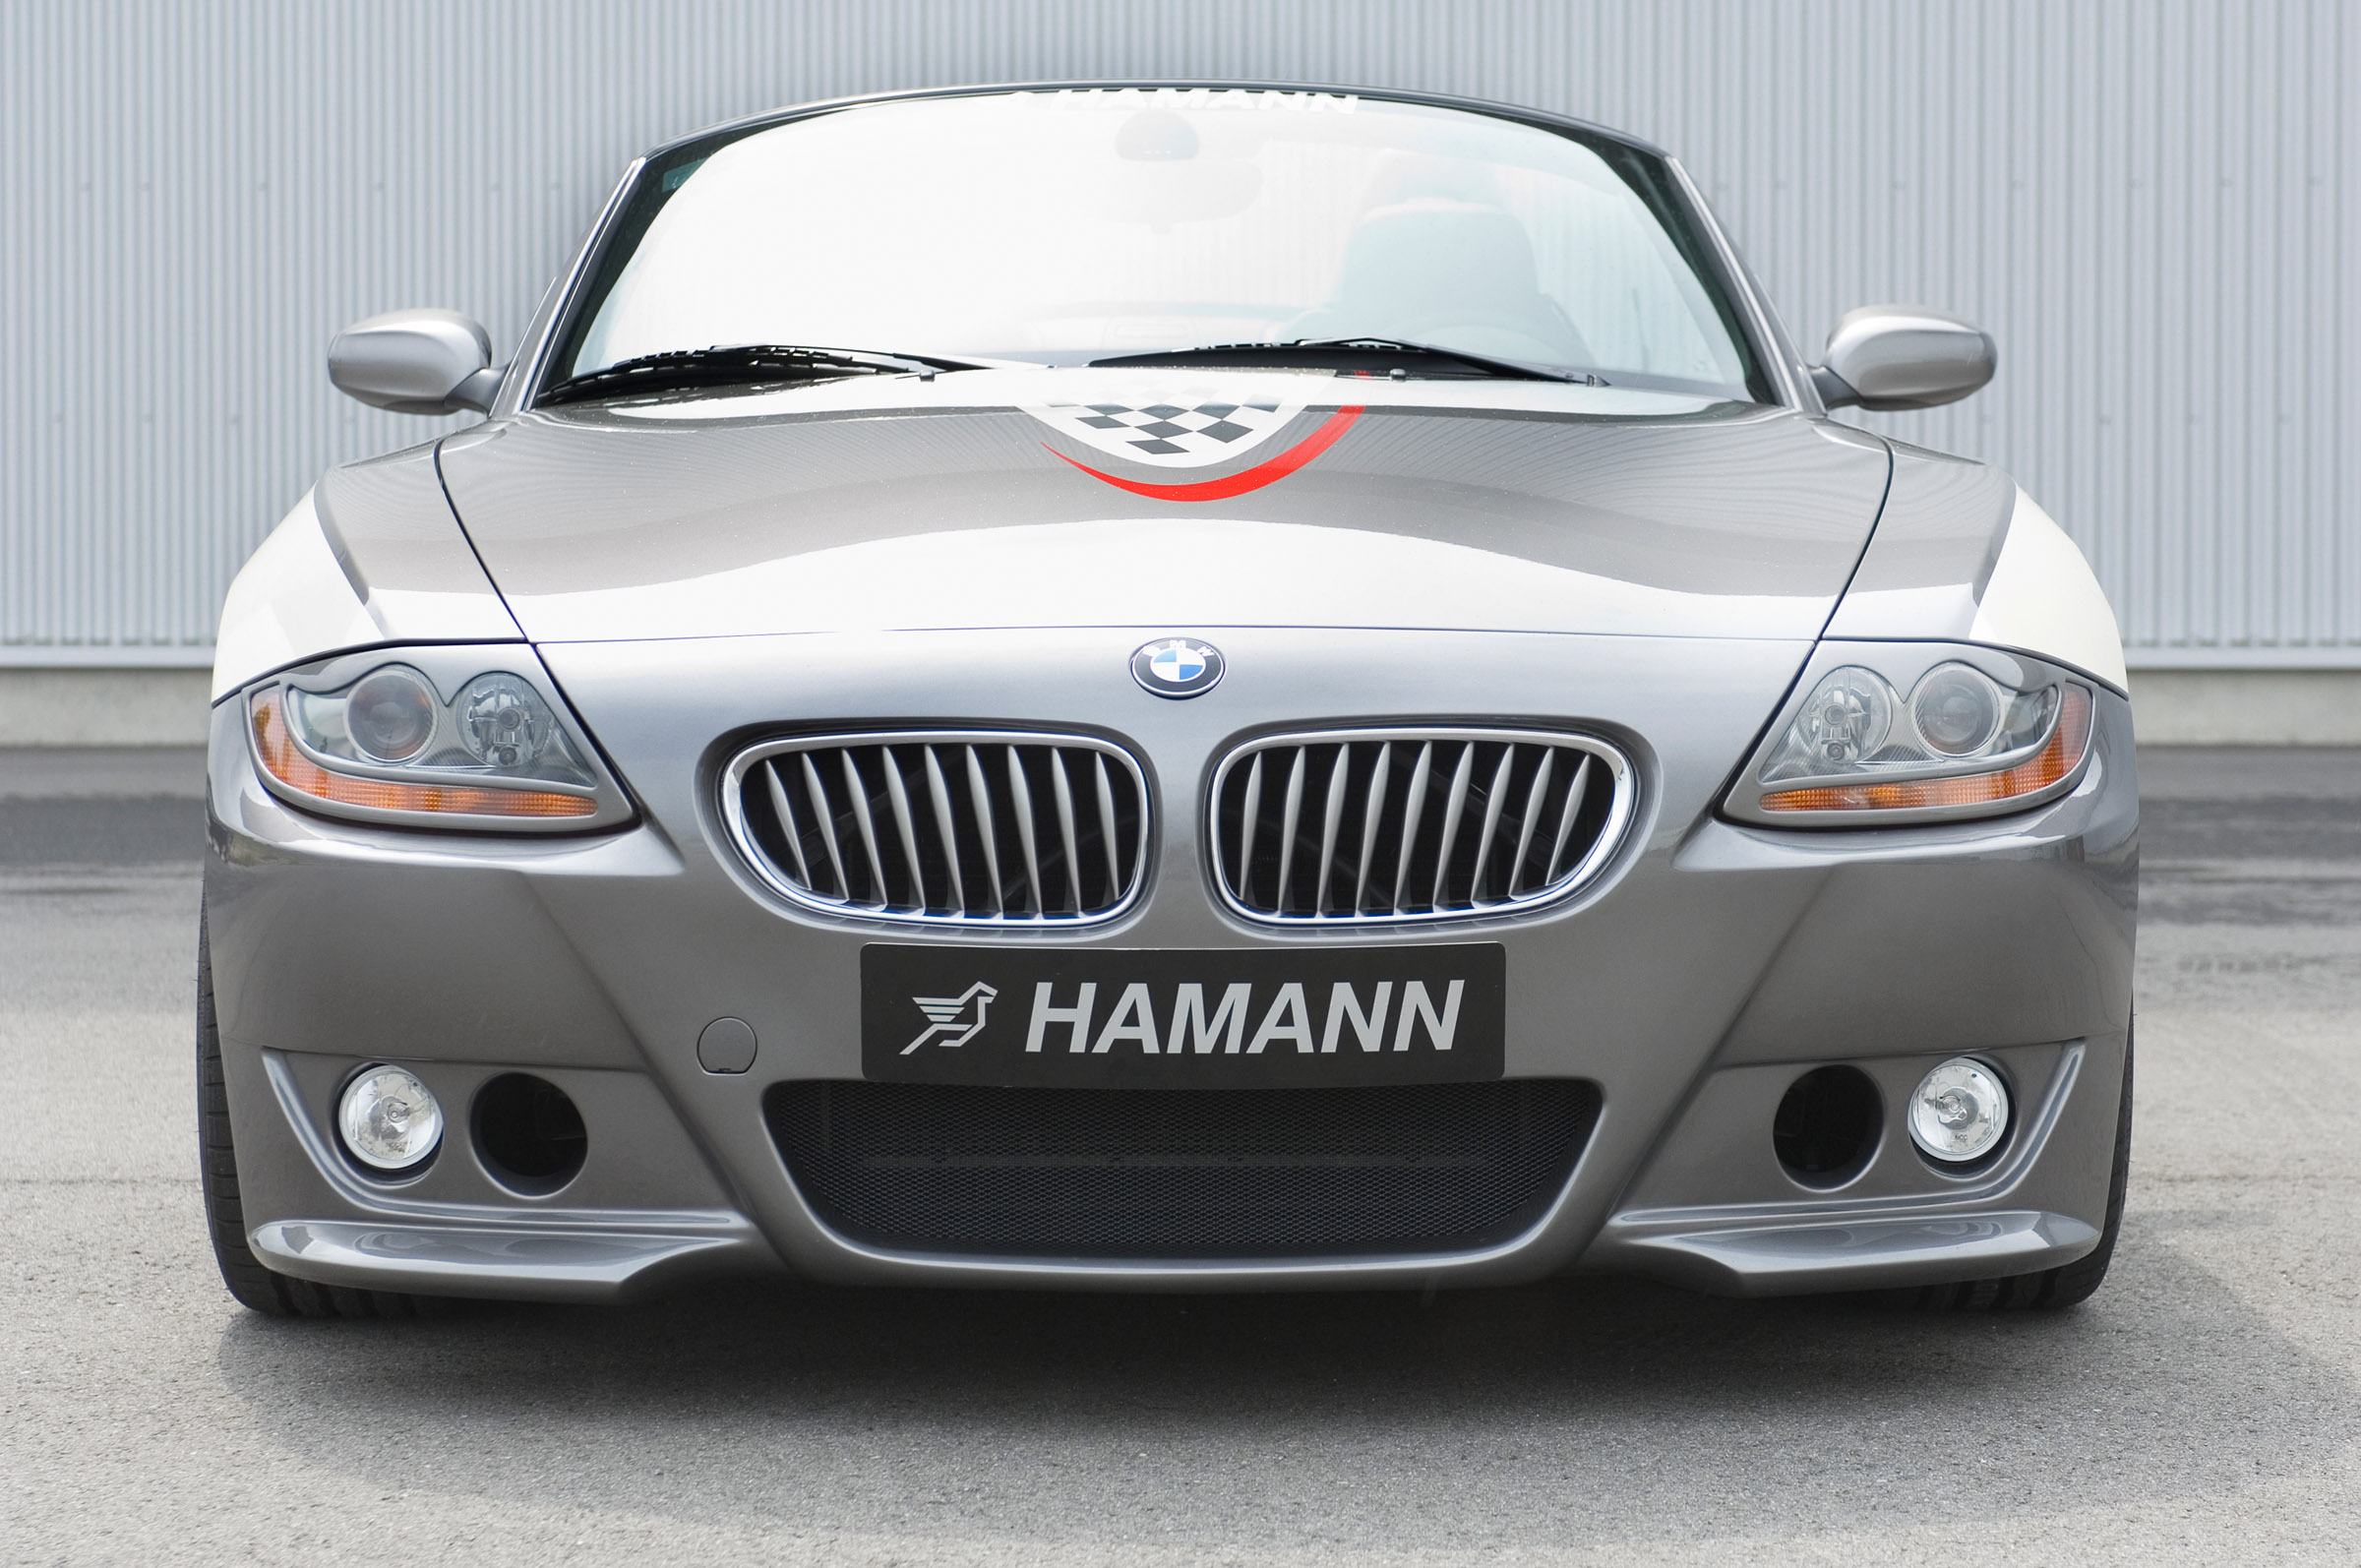 2018 Hamann BMW Z4 M Roadster photo - 2